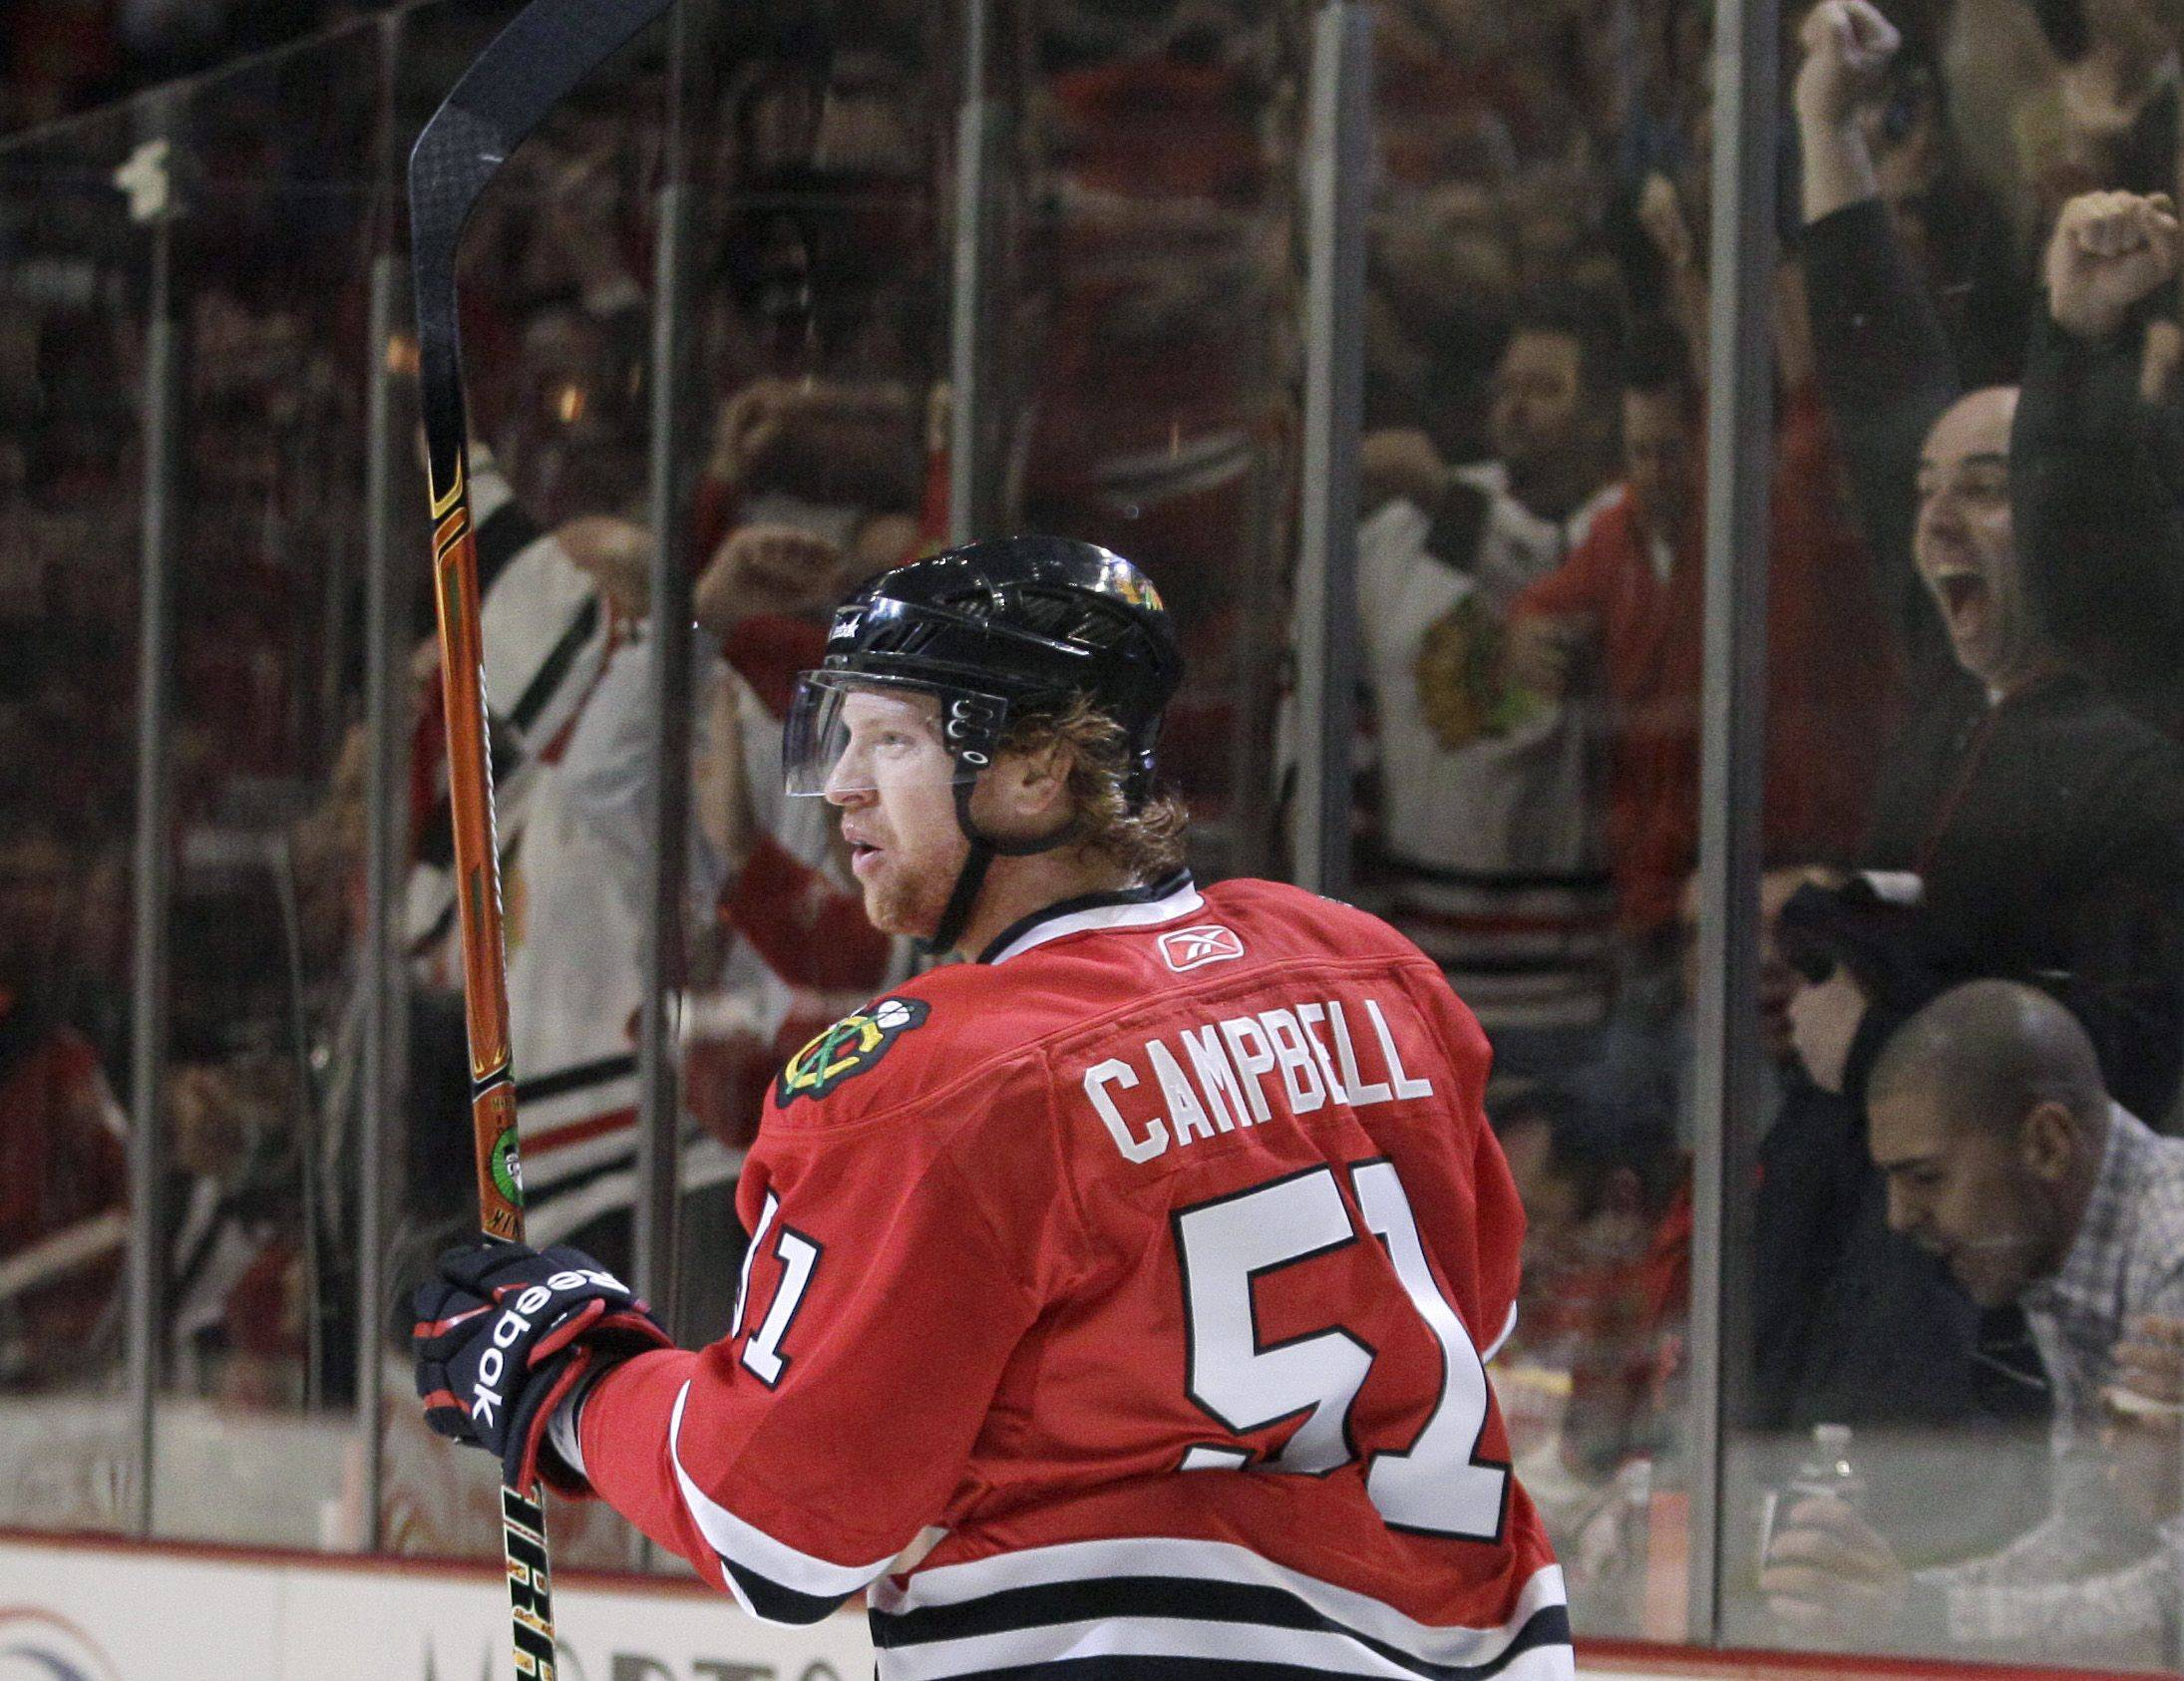 Chicago Blackhawks defenseman Brian Campbell reacts after scoring a goal during the second period.